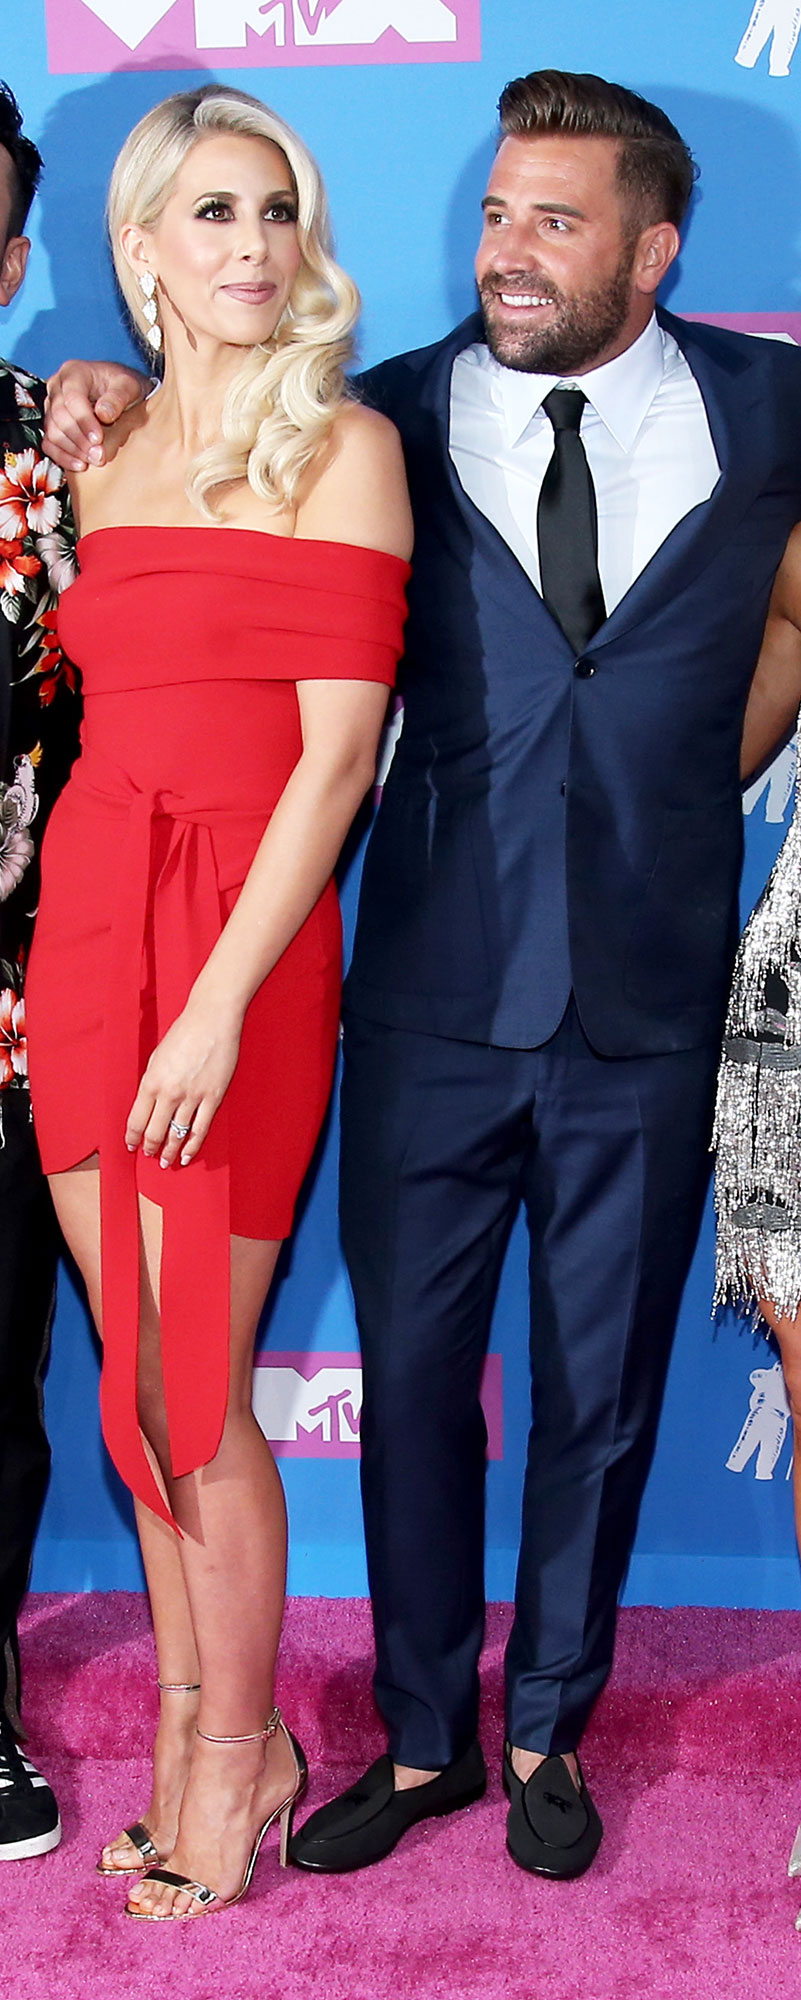 ashley wahler jason wahler the hills new beginning VMAs 2018s - Jason Wahler and wife Ashley Wahler looked happier than ever at the VMAs. Lauren Conrad 's ex battled with alcohol during his time on the original show and revealed in April that he had relapsed.